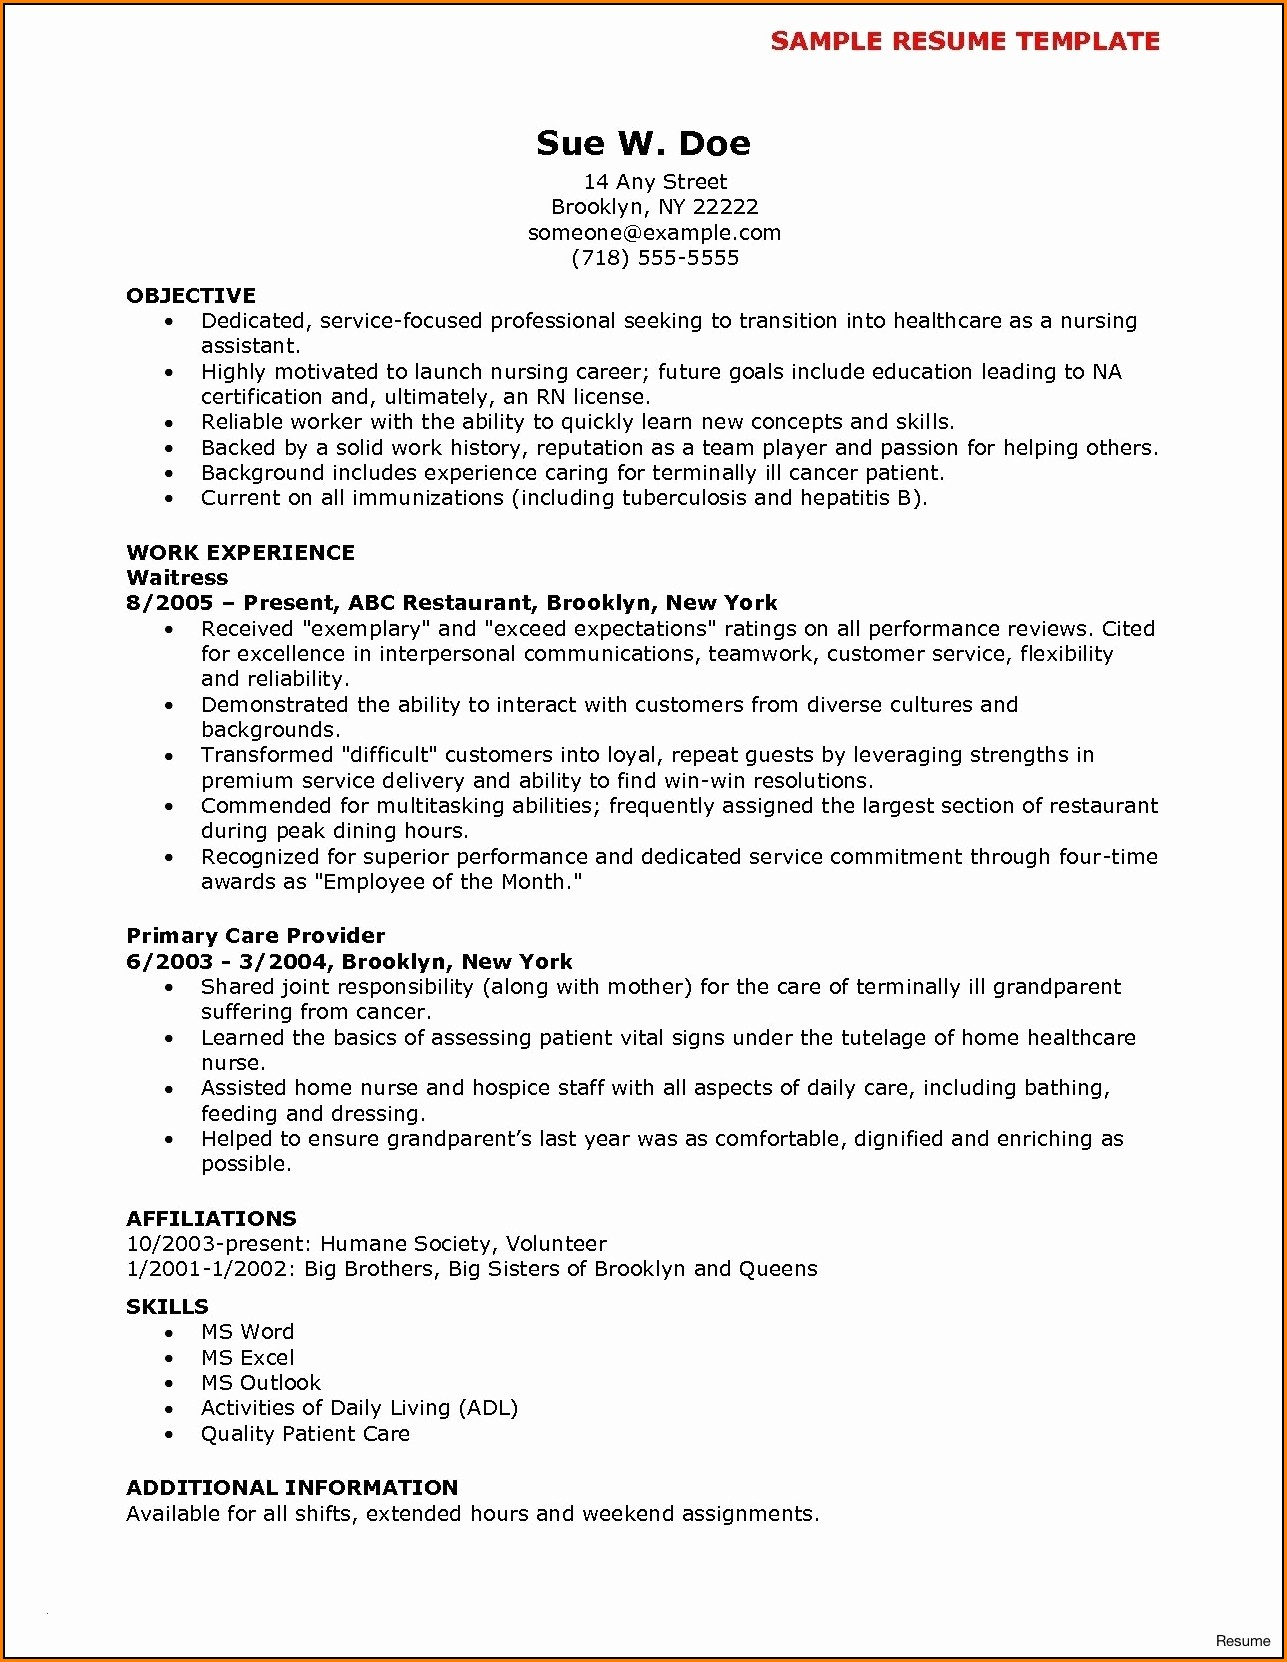 Nursing Resume Templates Word